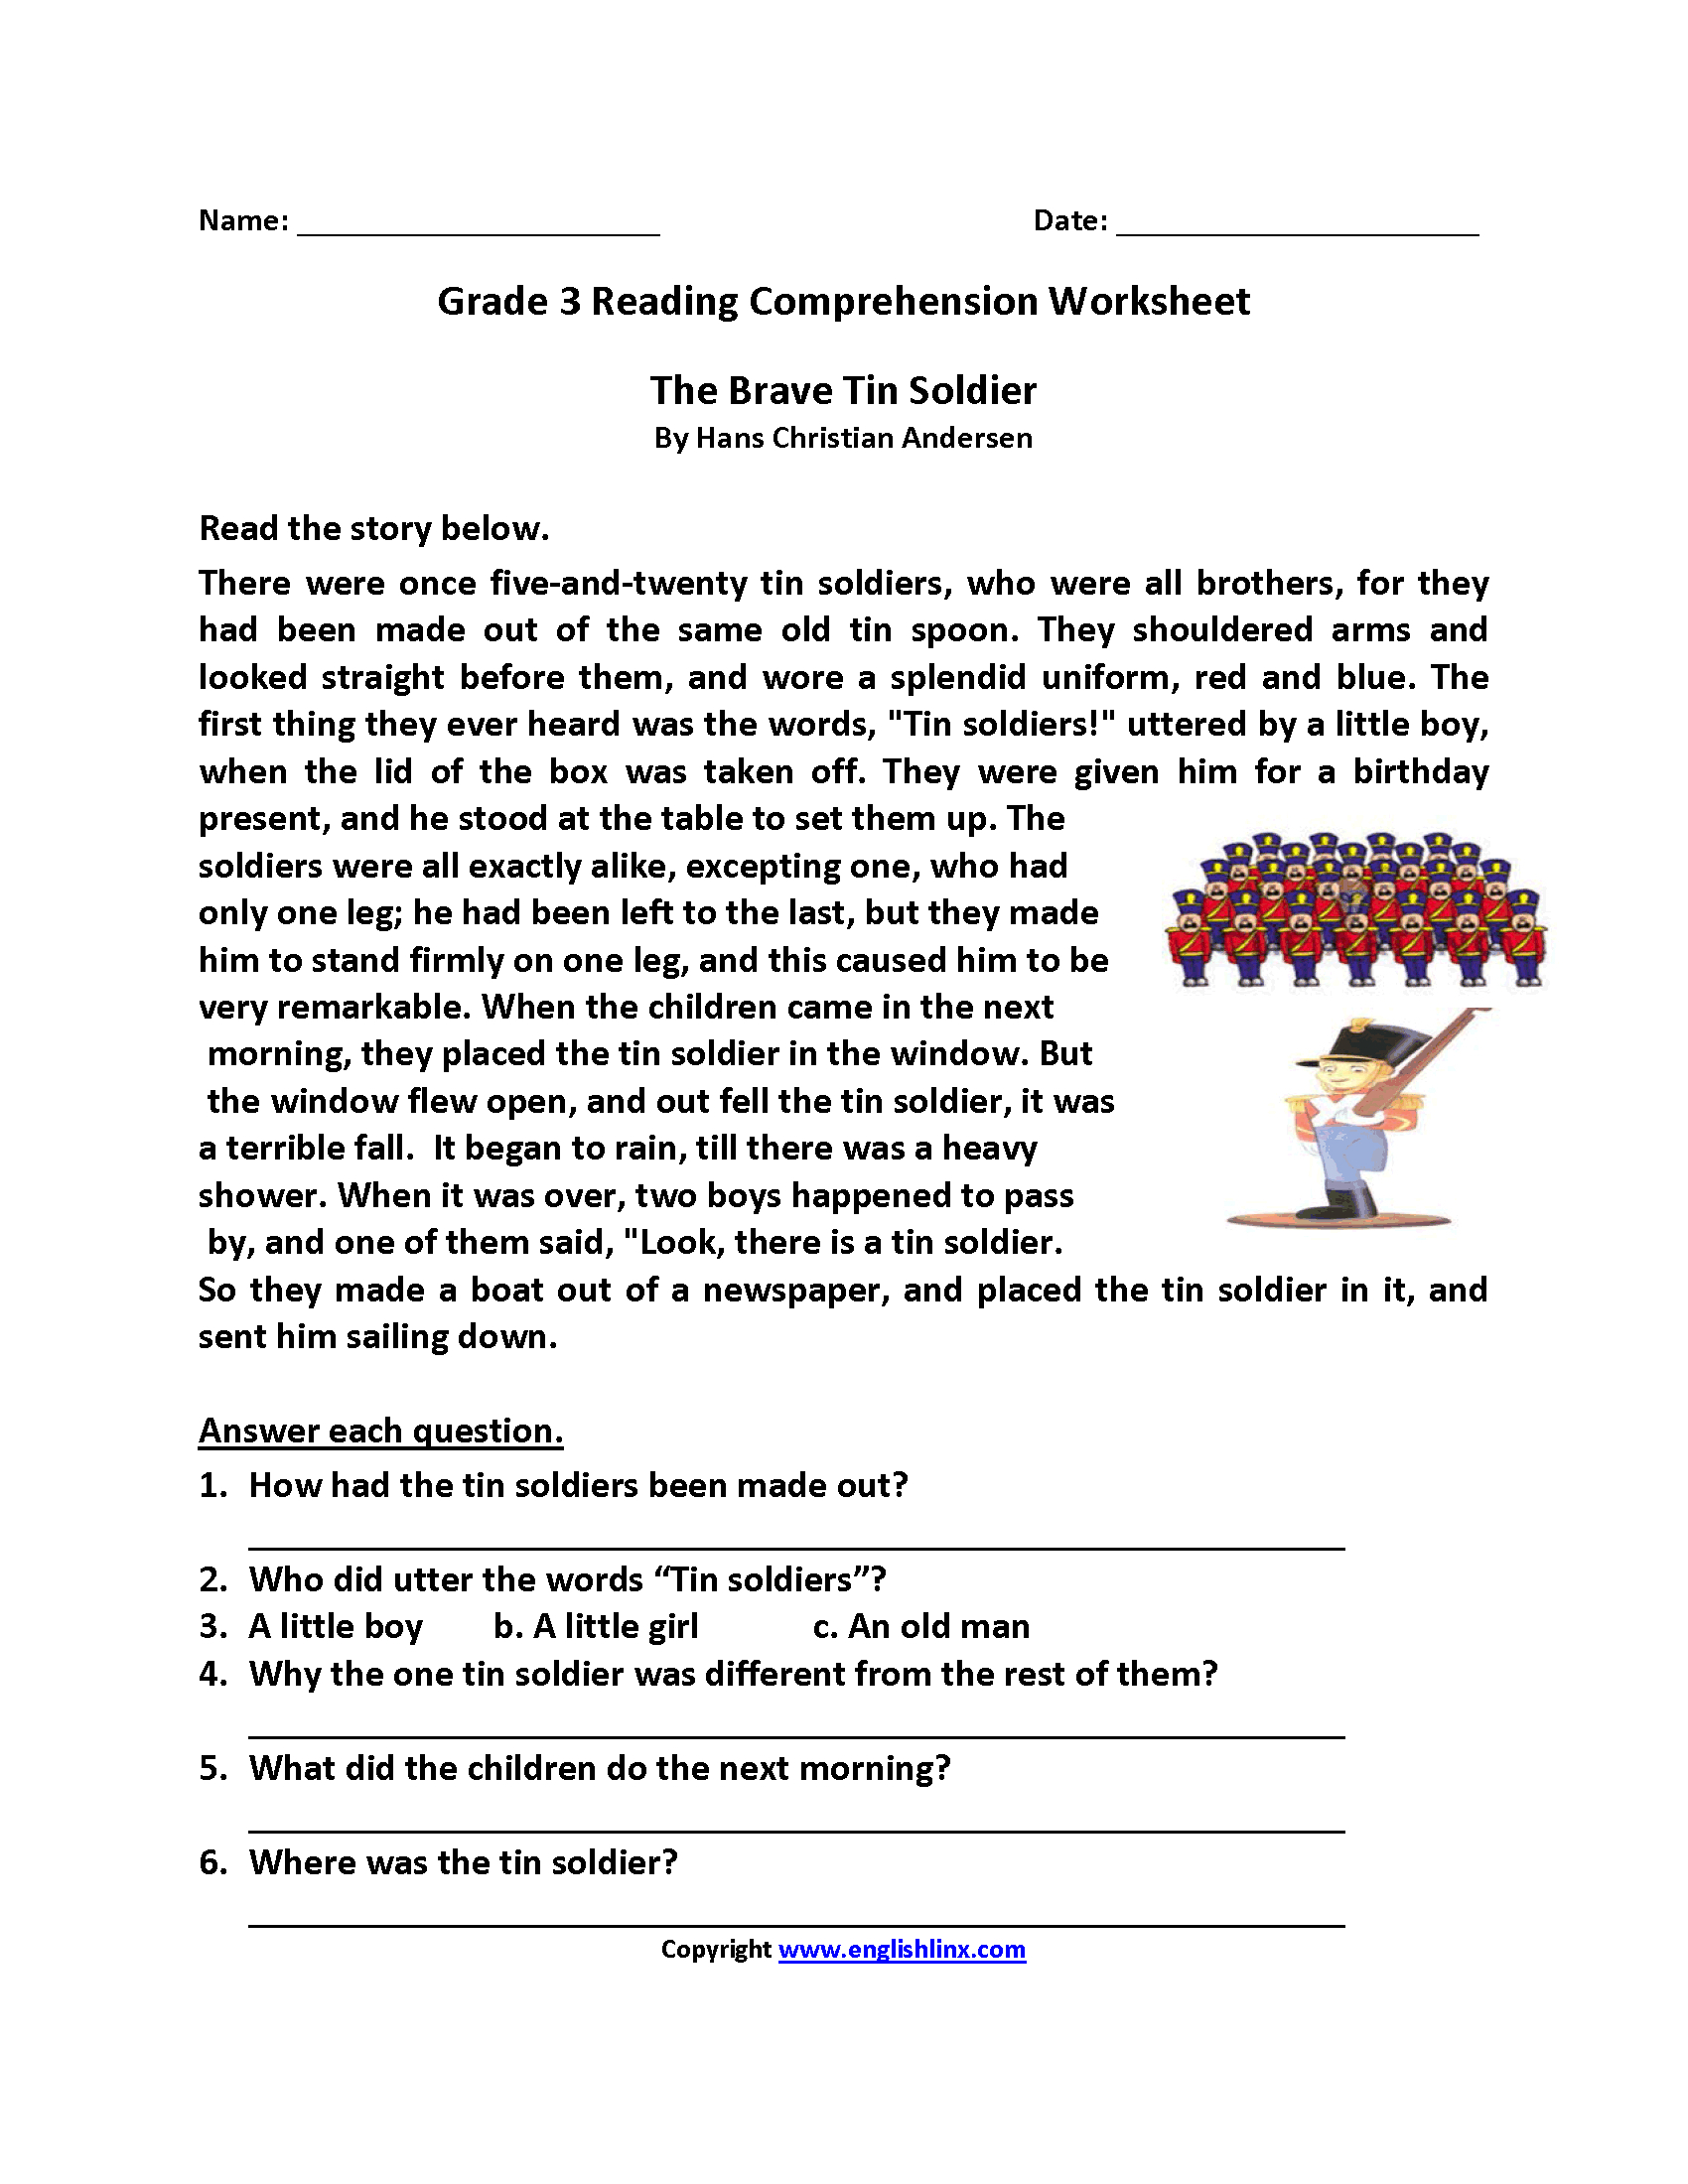 Free Printable Reading Comprehension Worksheets 3Rd Grade For Free | Printable Comprehension Worksheets For Grade 6